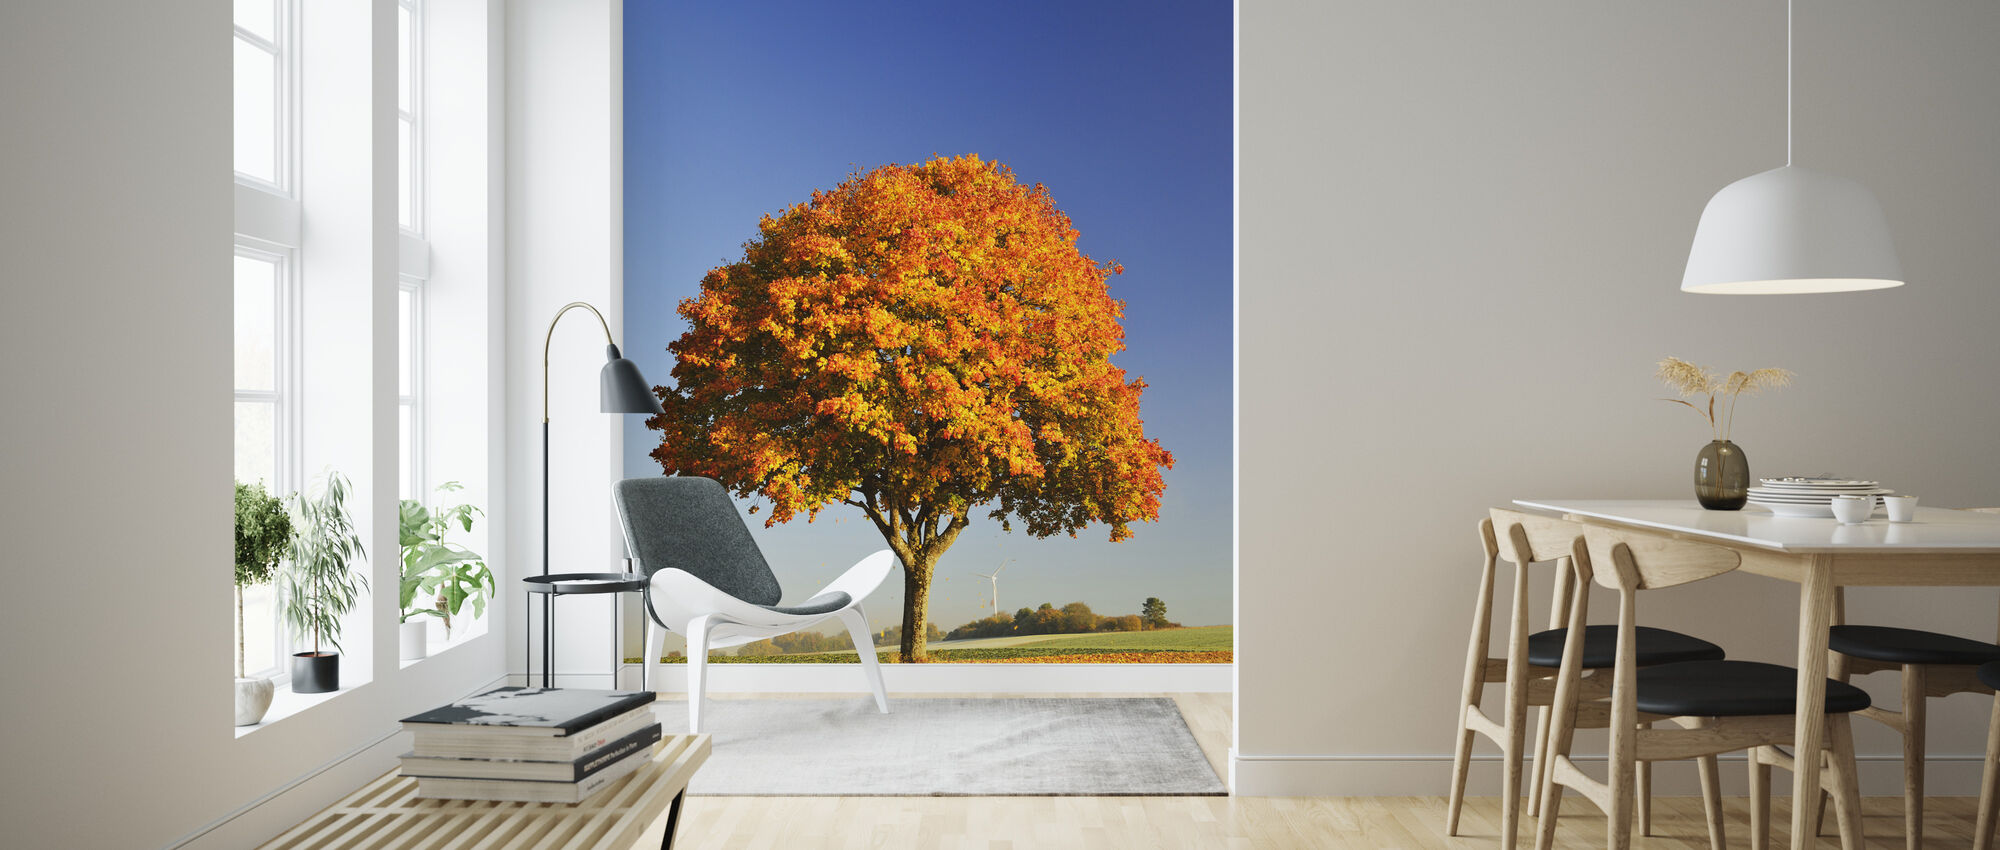 Majestic Maple Tree - Wallpaper - Living Room